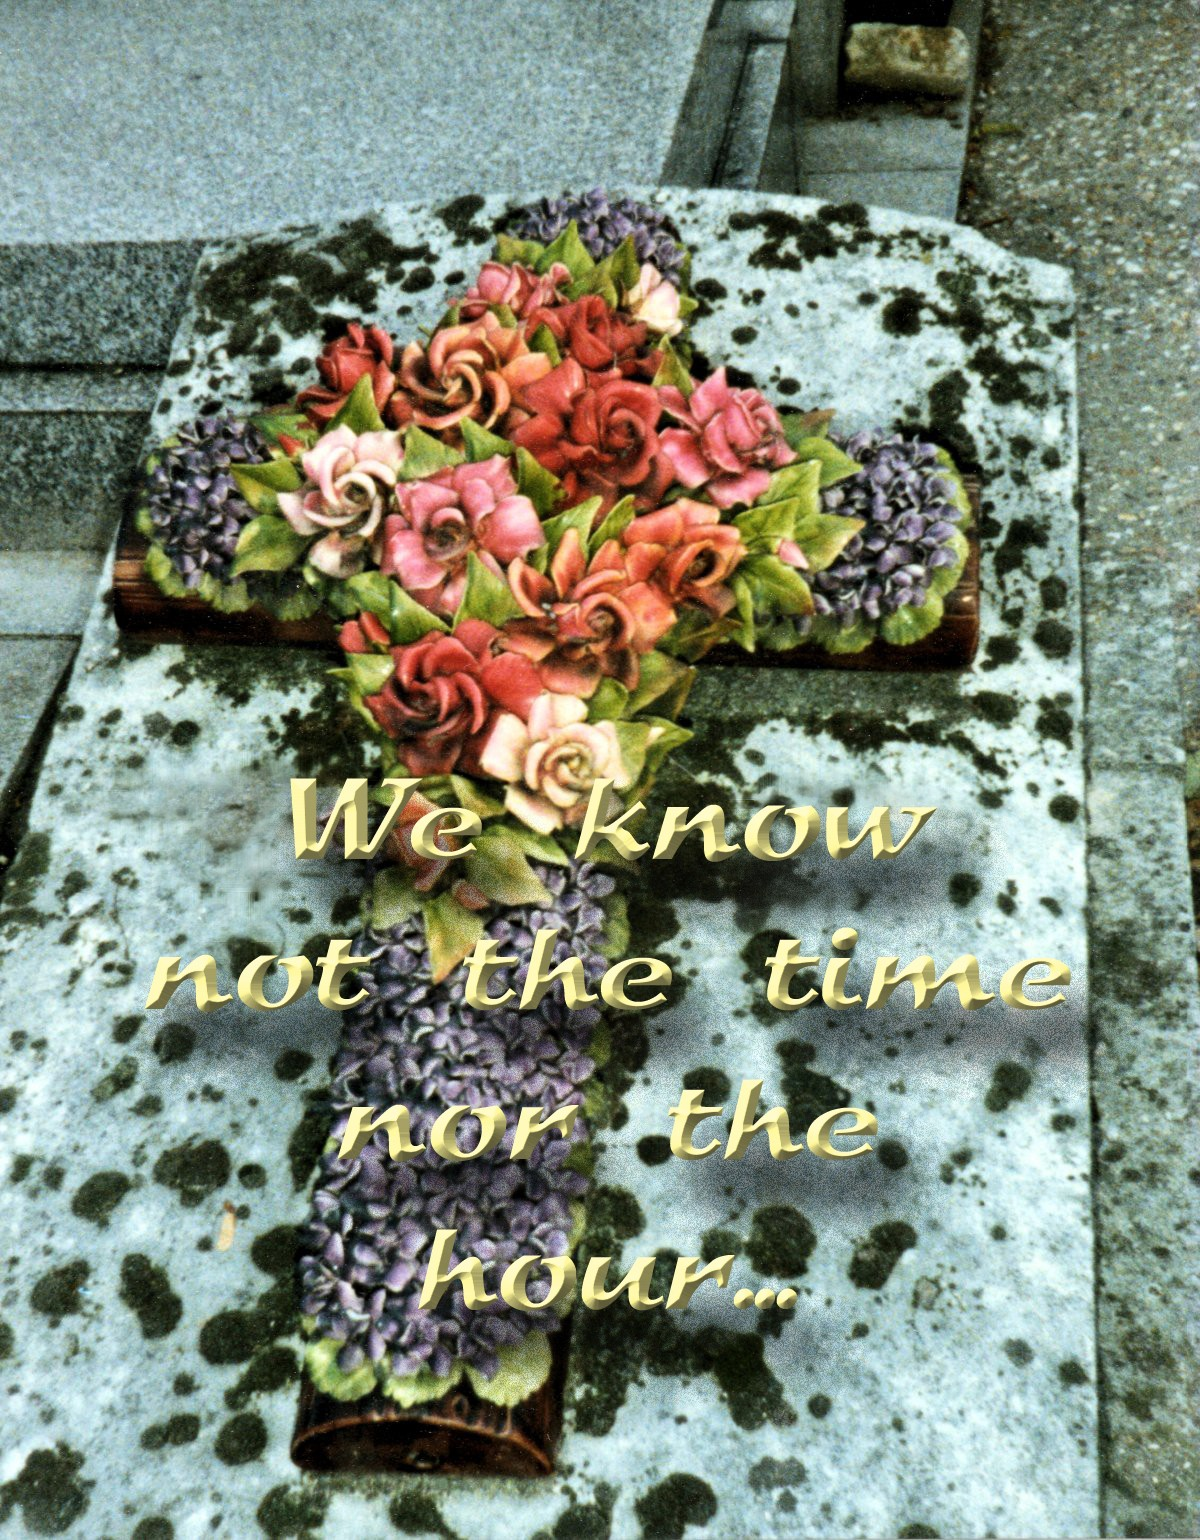 00 flowers on grave. 18.11.12